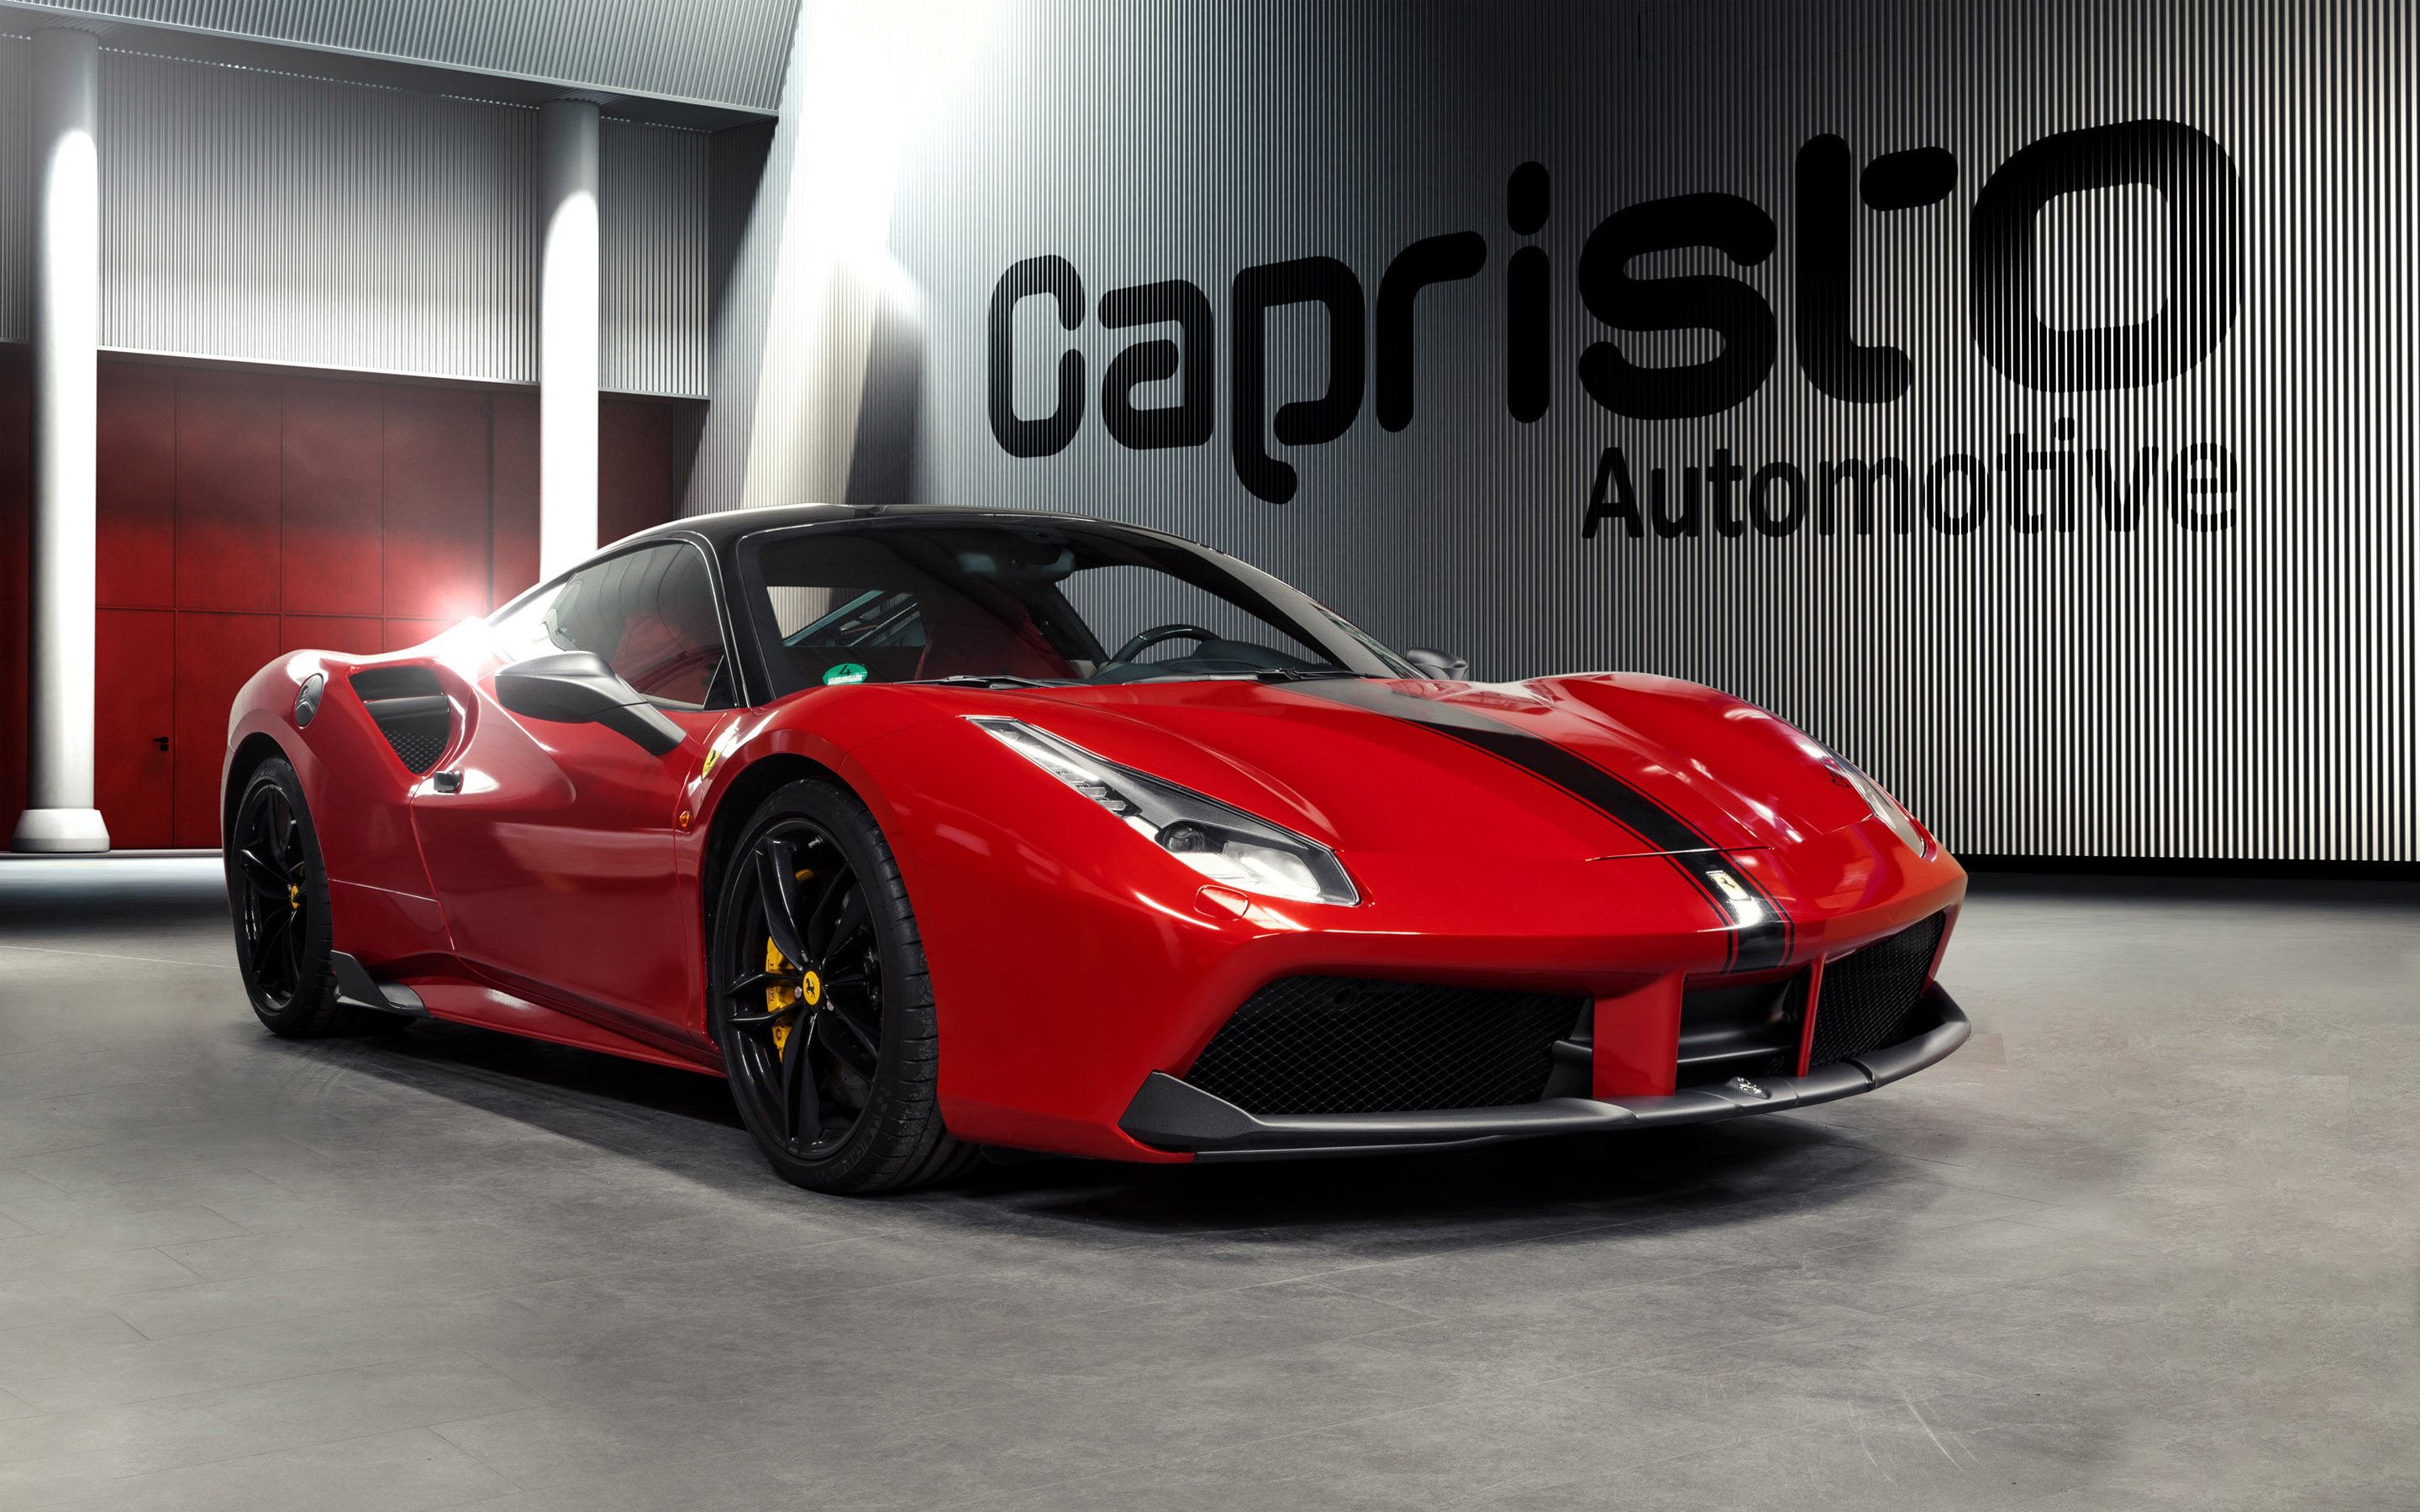 2016 Capristo Automotive Ferrari 488 Gtb Wallpaper Hd Car